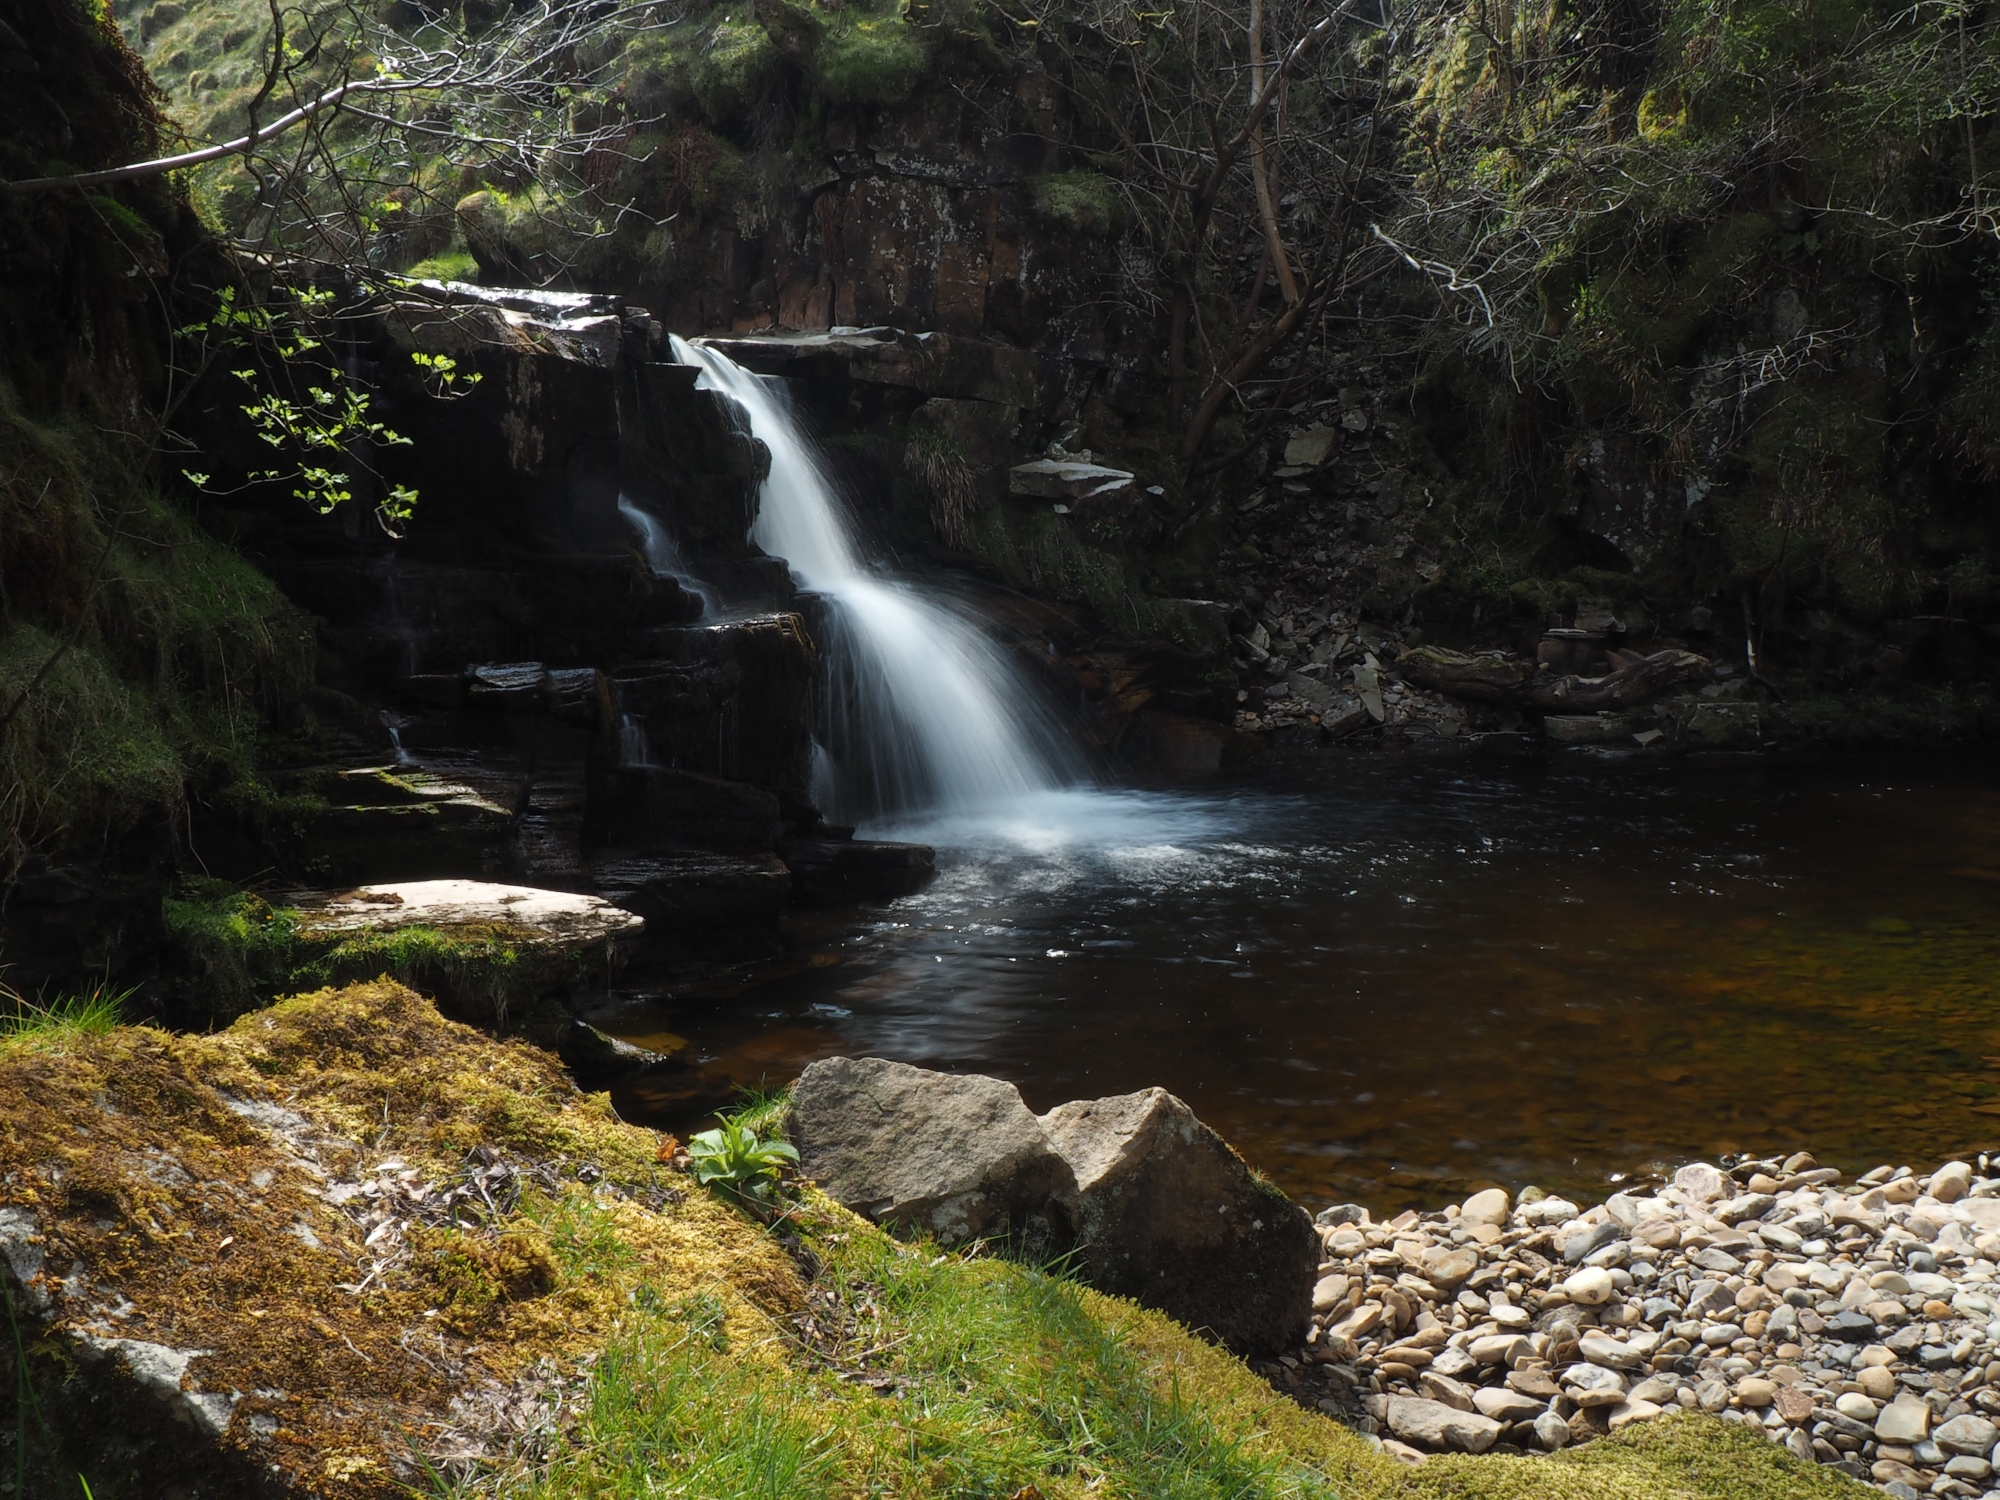 Waterfall in Uldale